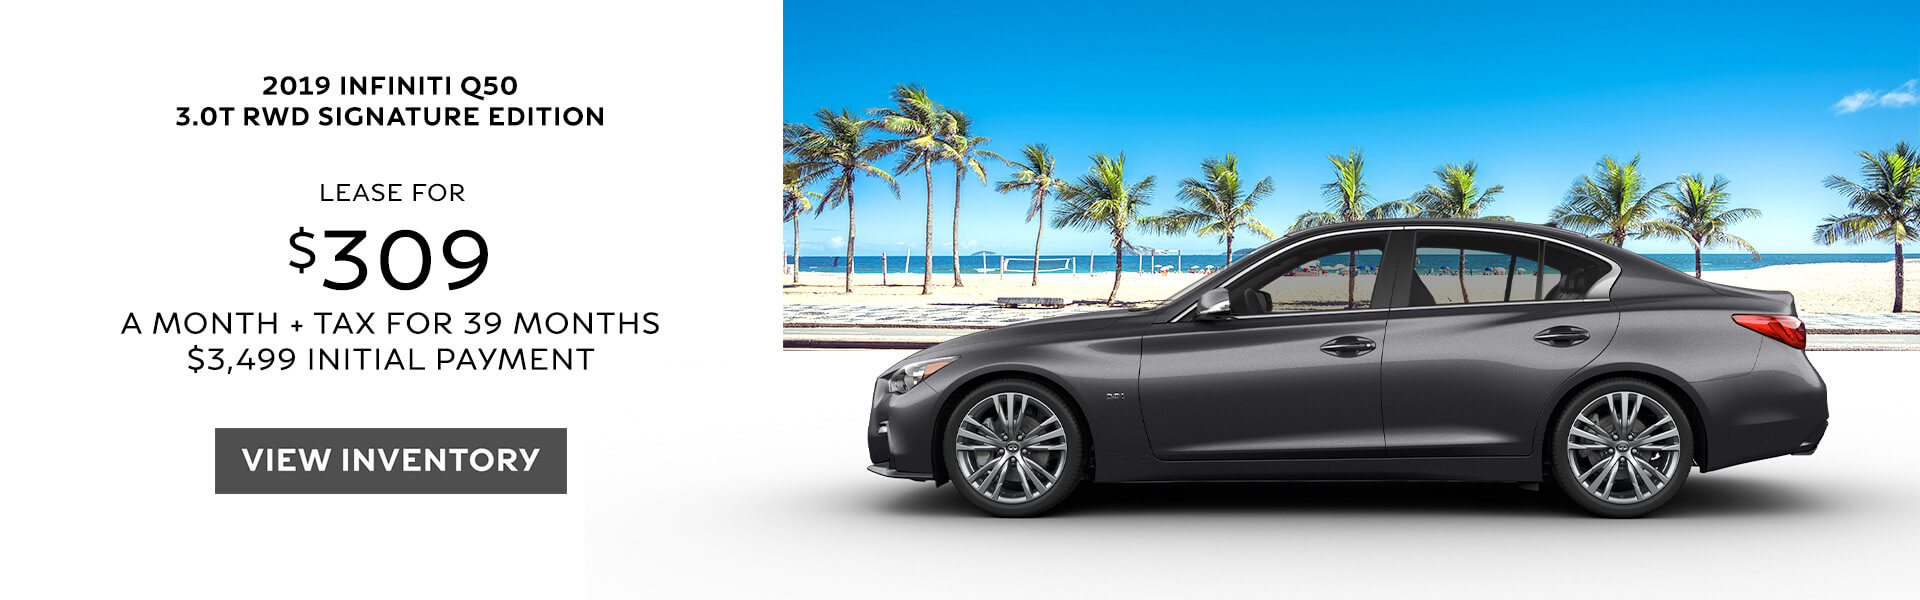 2019 Q50 - Lease for $309